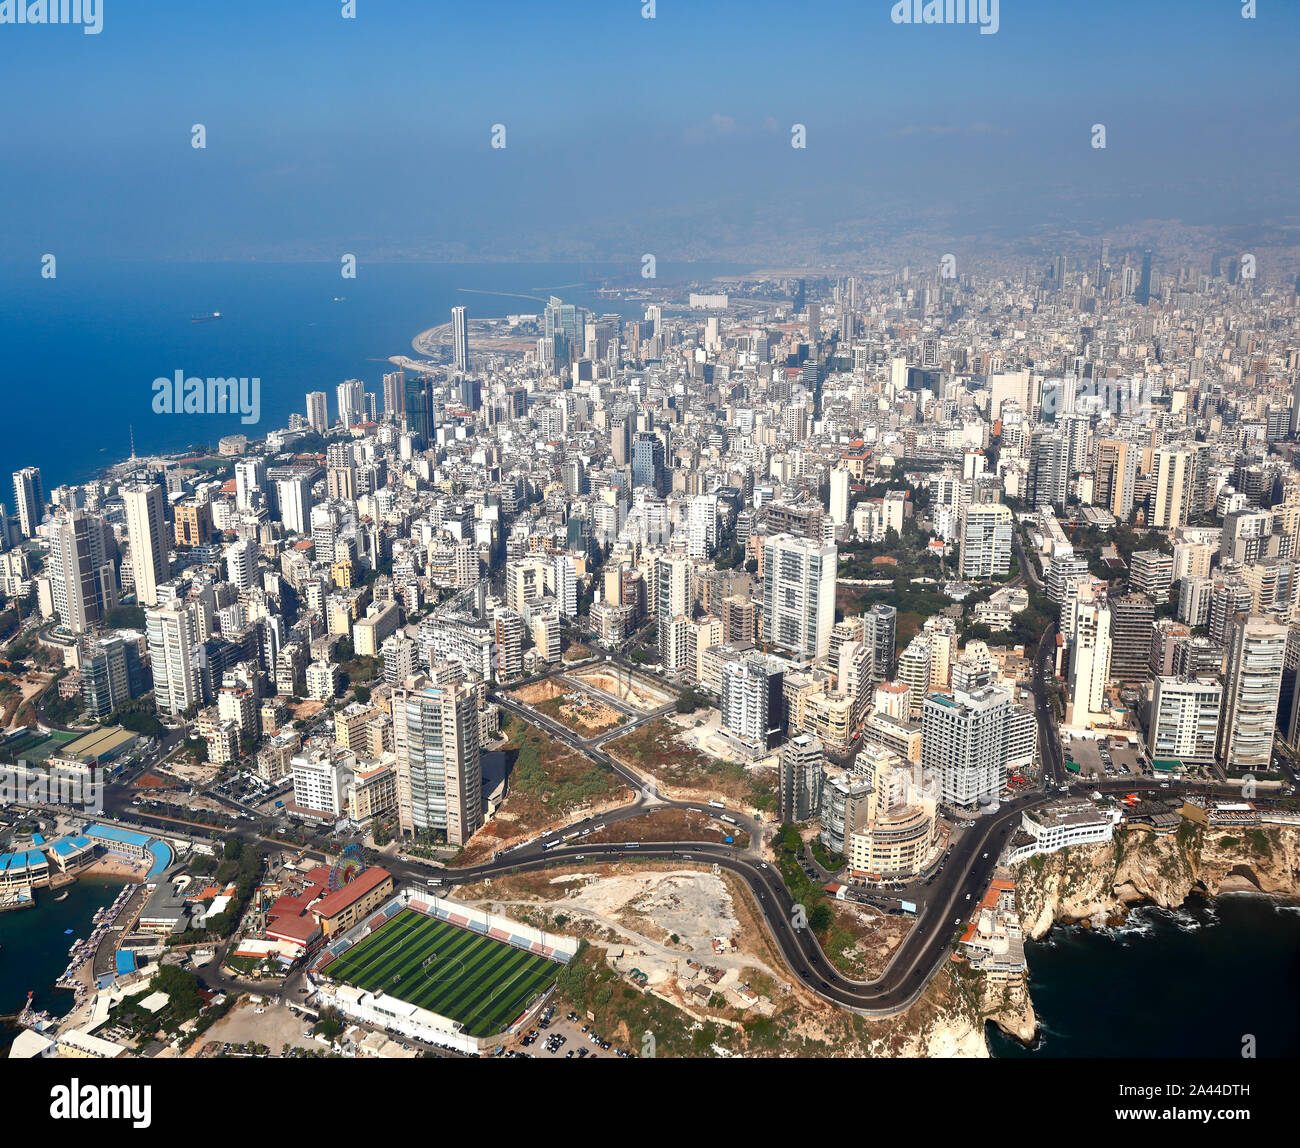 Beirut, Aerial View of the city and its famous Pigeon Rocks - Lebanon Stock Photo